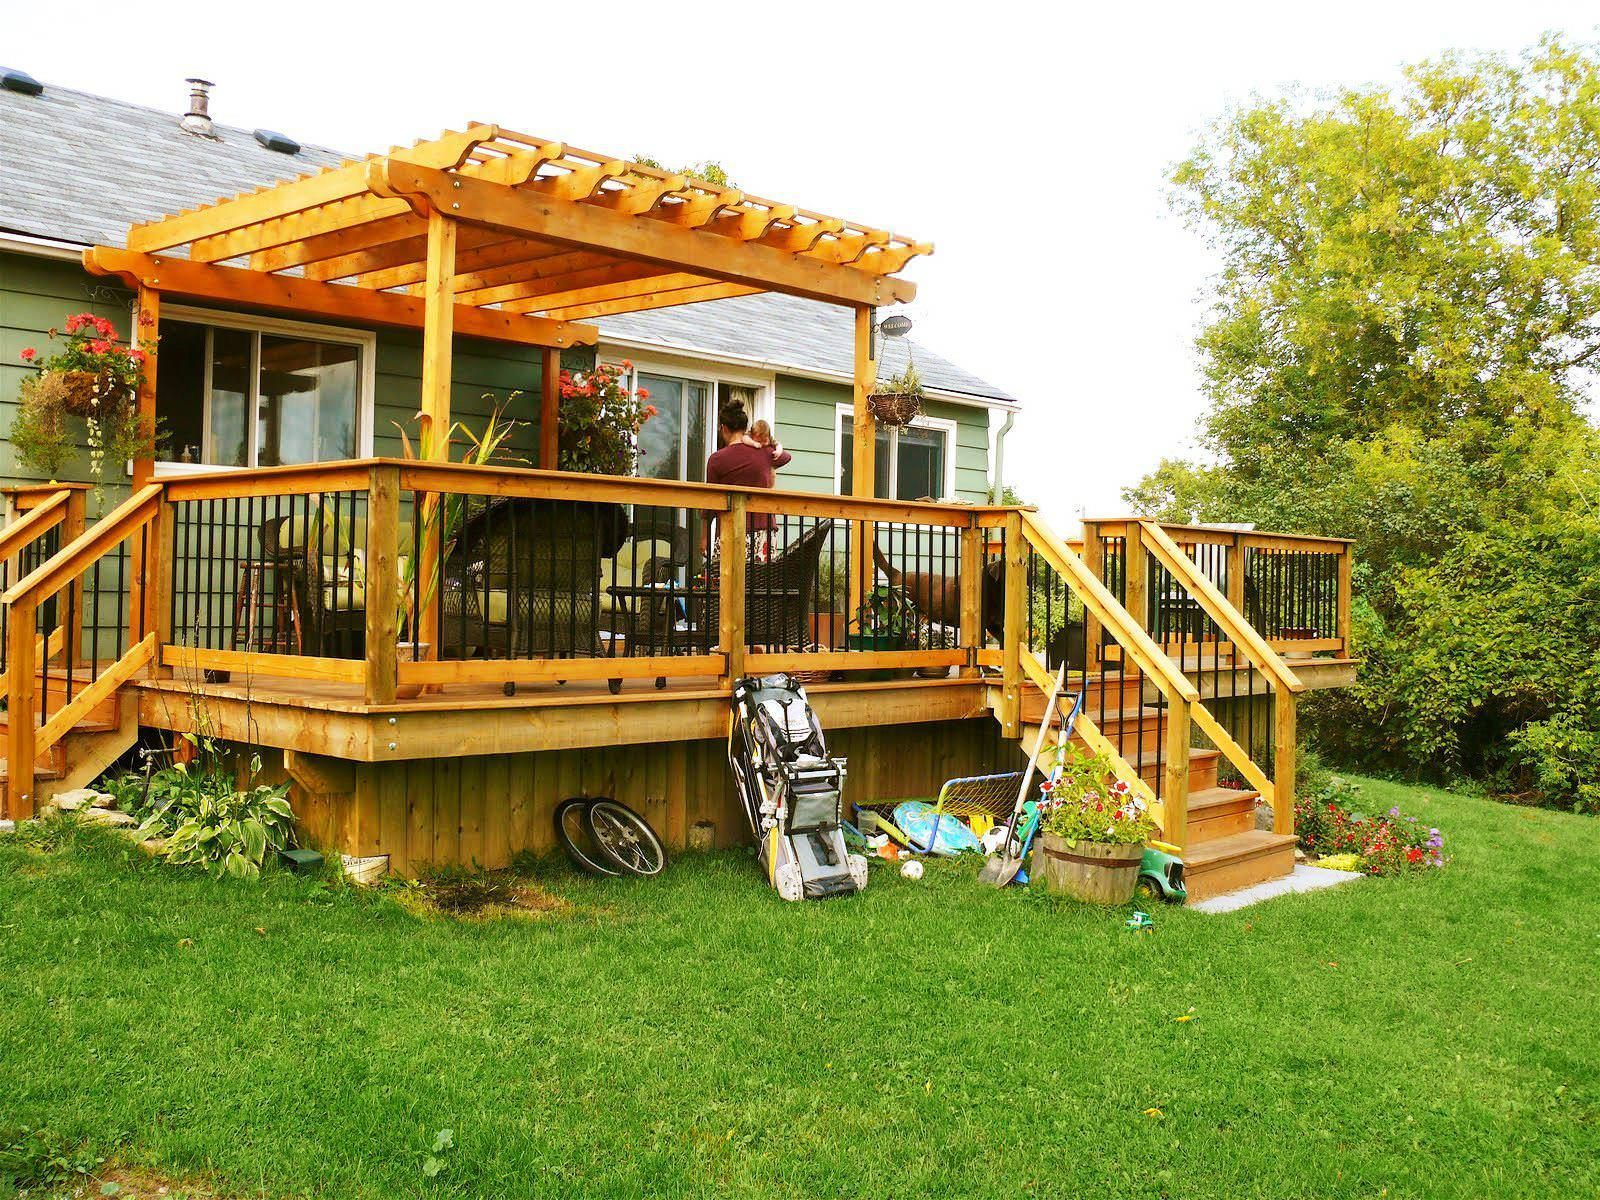 Diy Deck Building Construction Details : Amazing covered deck ideas to inspire you photos great